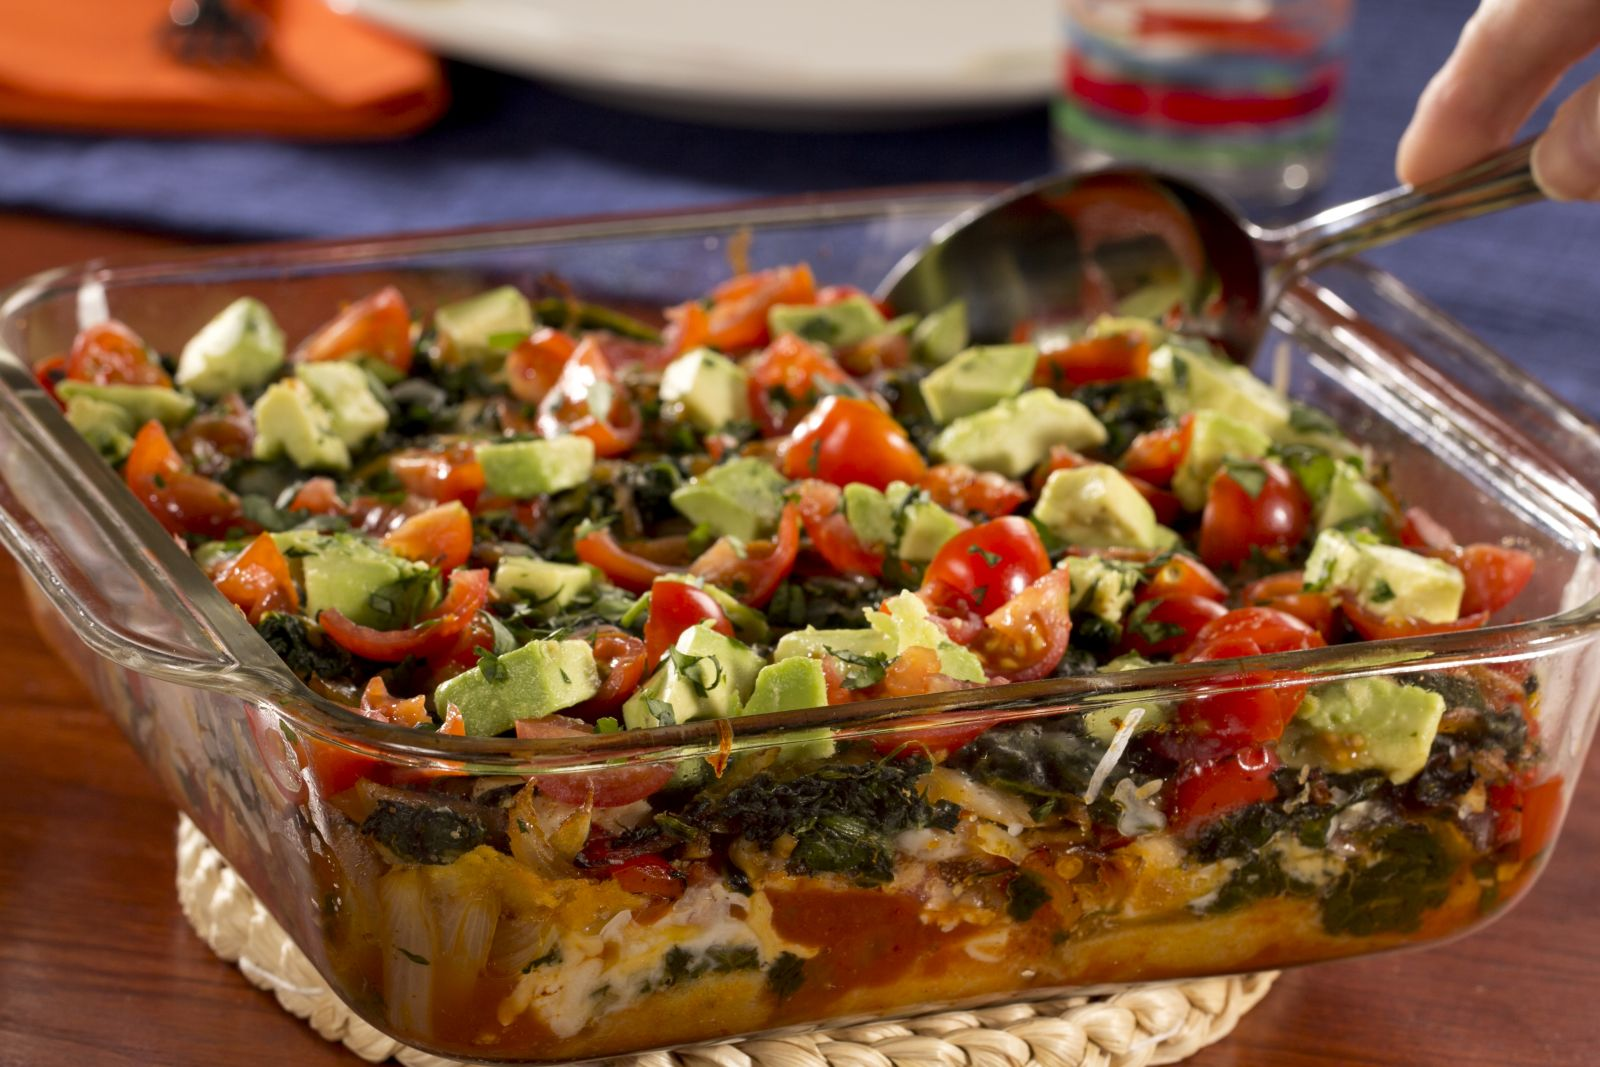 Healthy Chicken Casserole Recipes: 6 Easy Chicken Casseroles